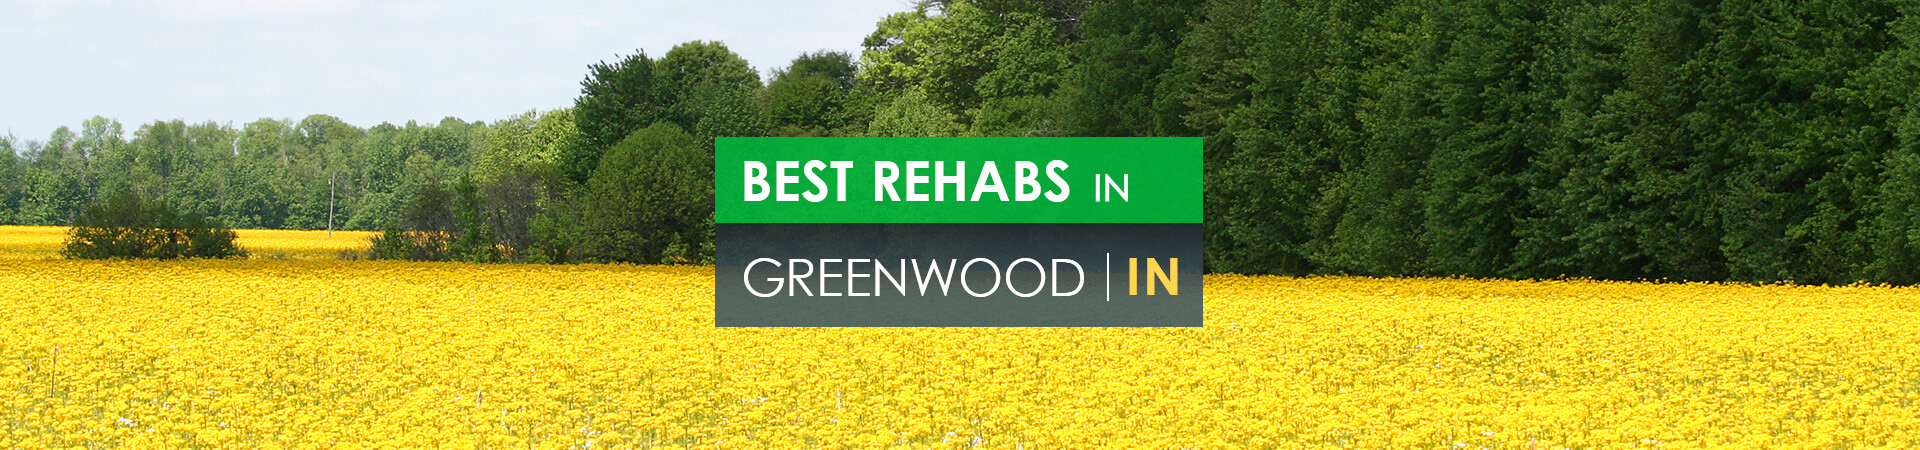 Best rehabs in Greenwood, IN